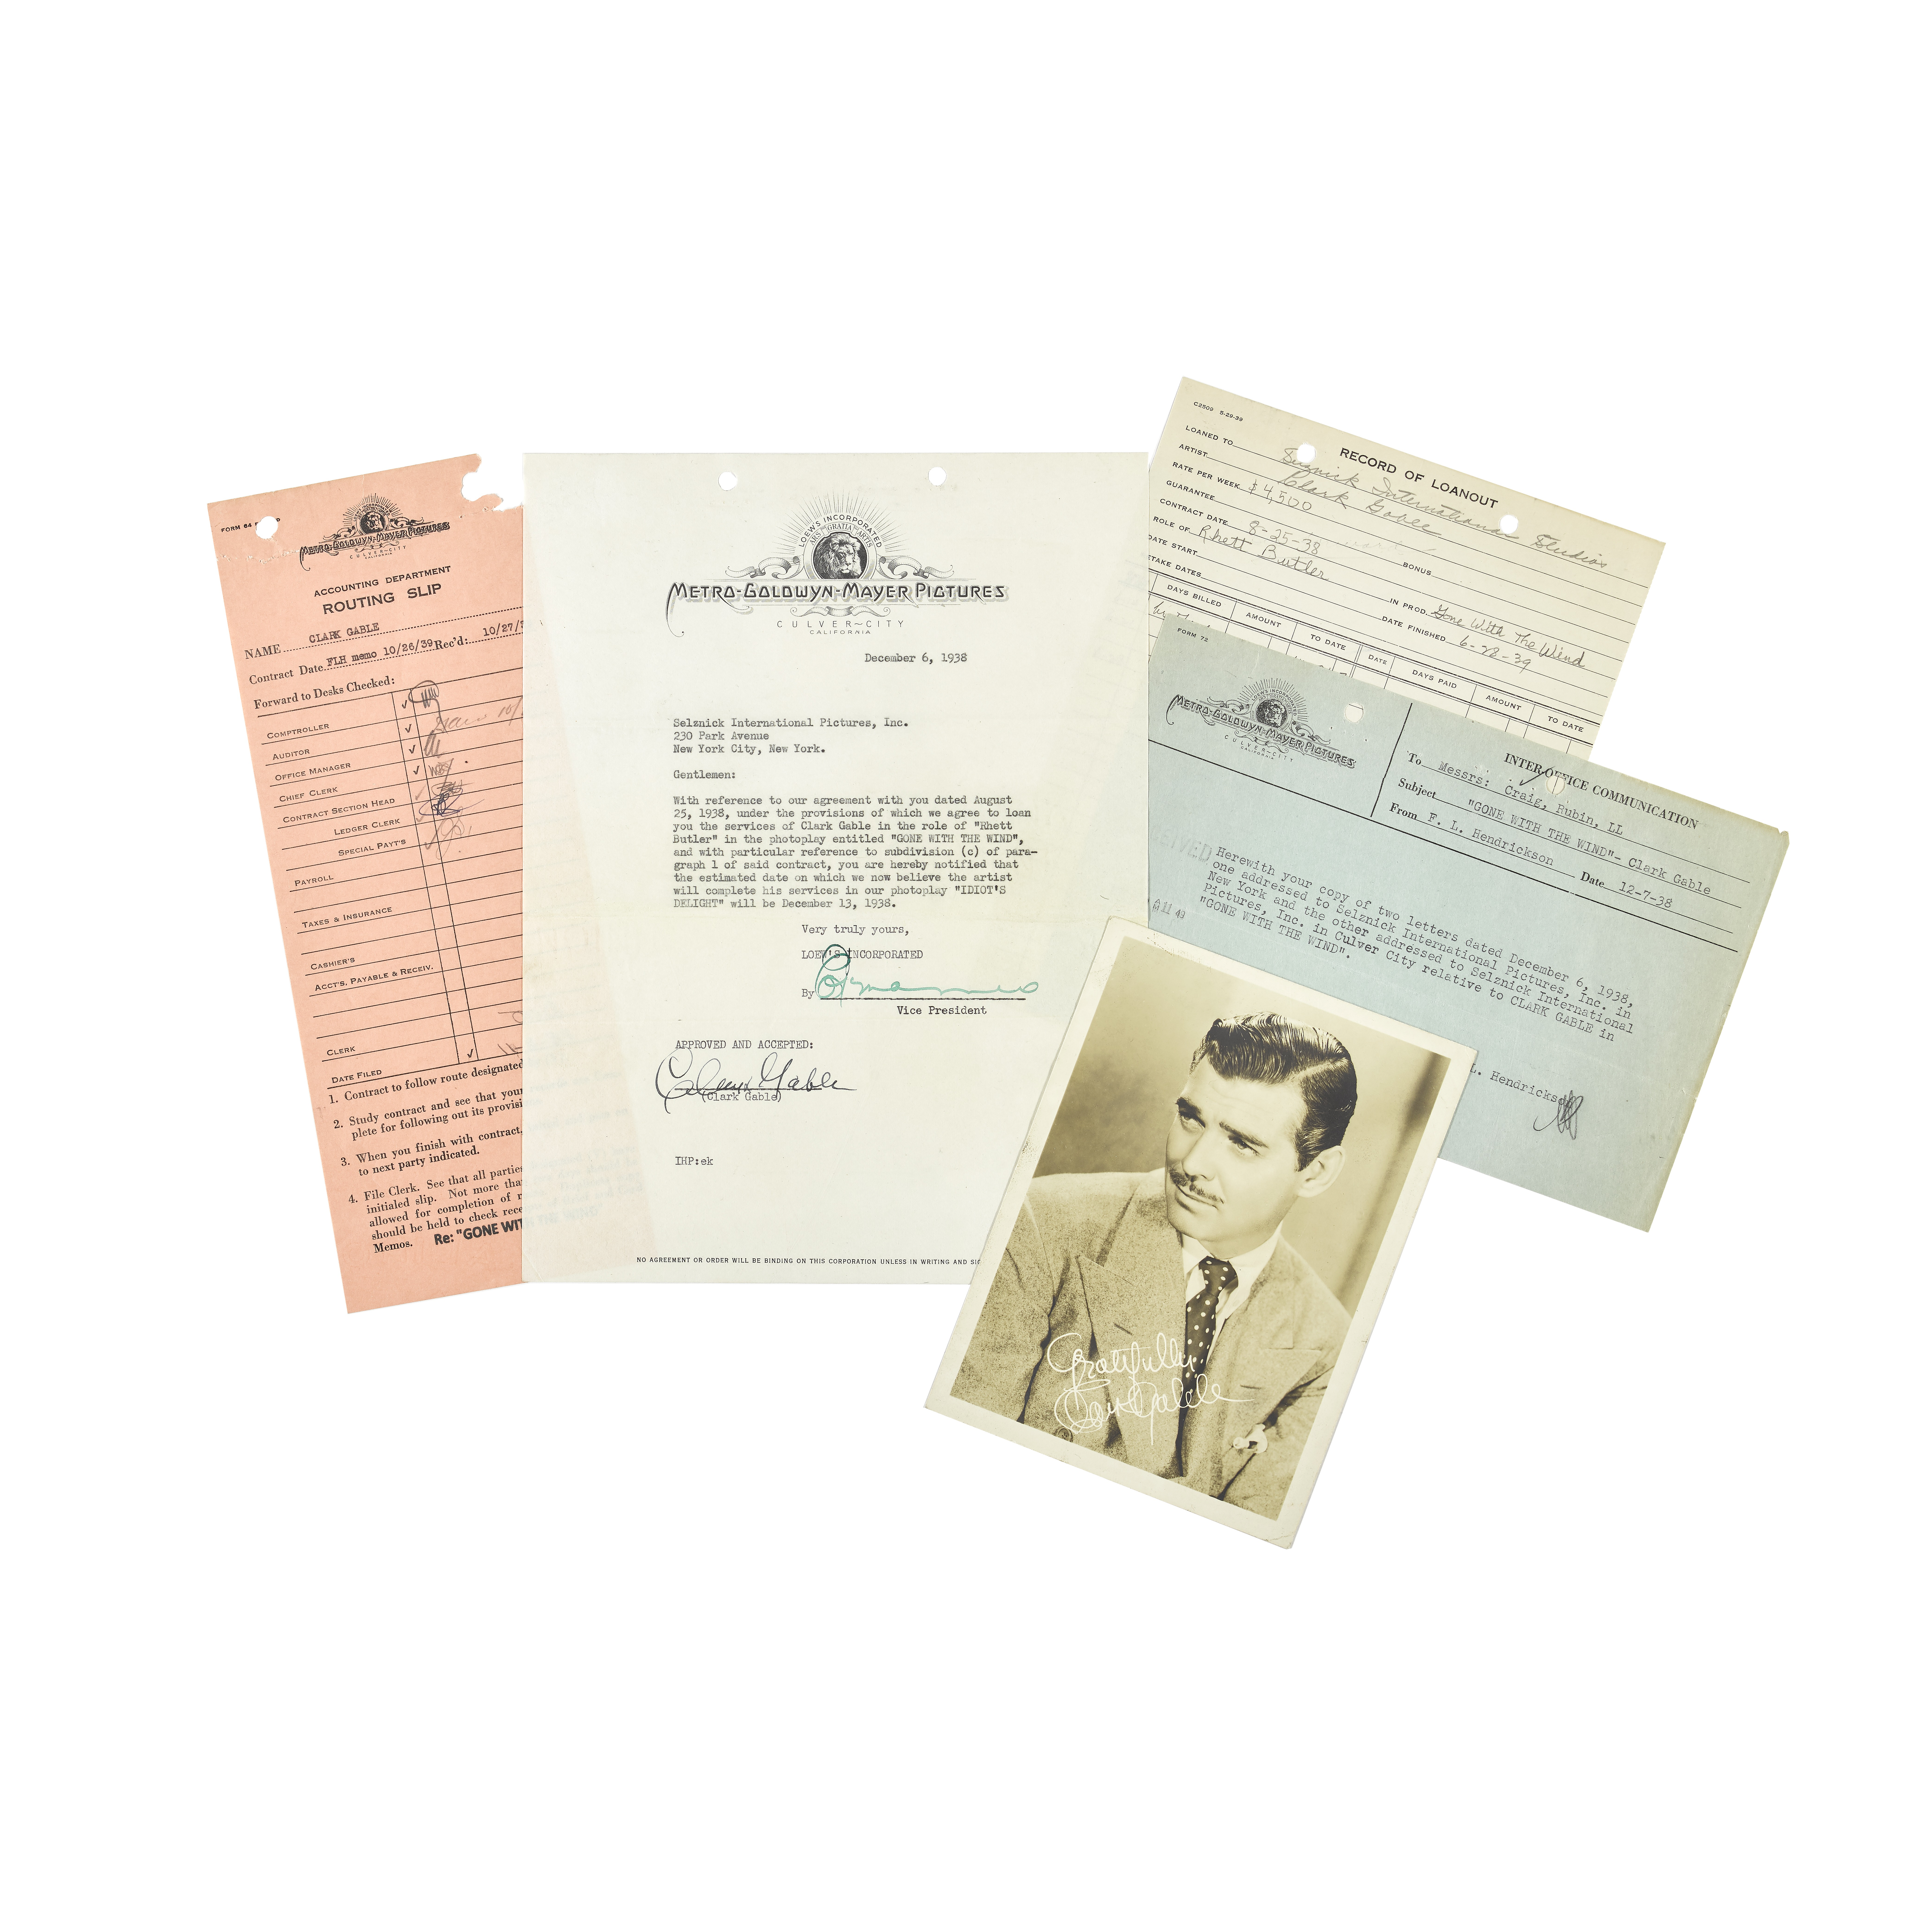 A Clark Gable signed contract for Gone With the Wind